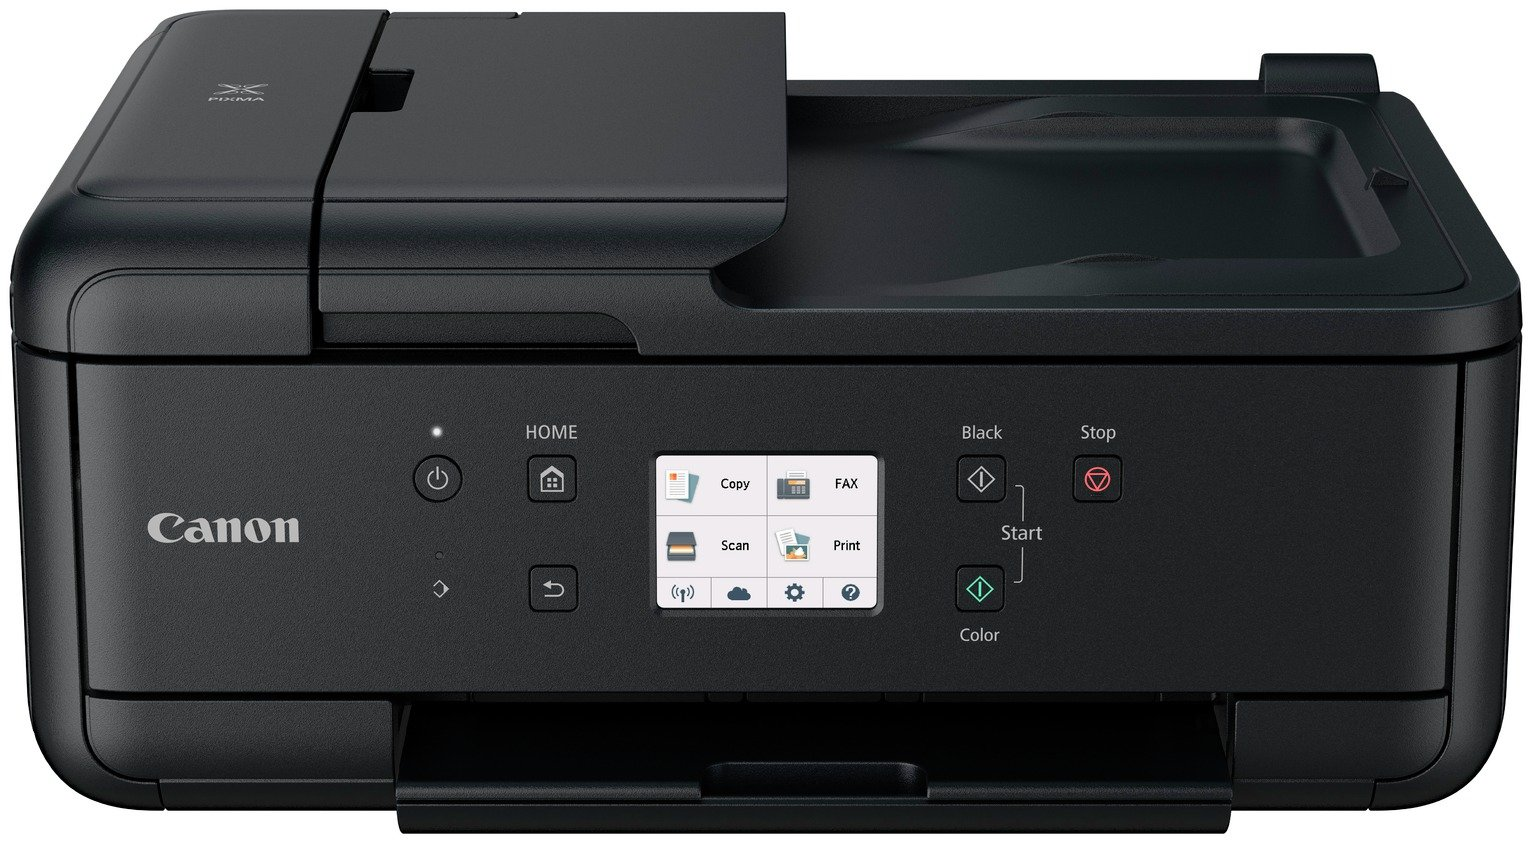 Canon Pixma TR7550 4-in-1 Wireless Inkjet Printer